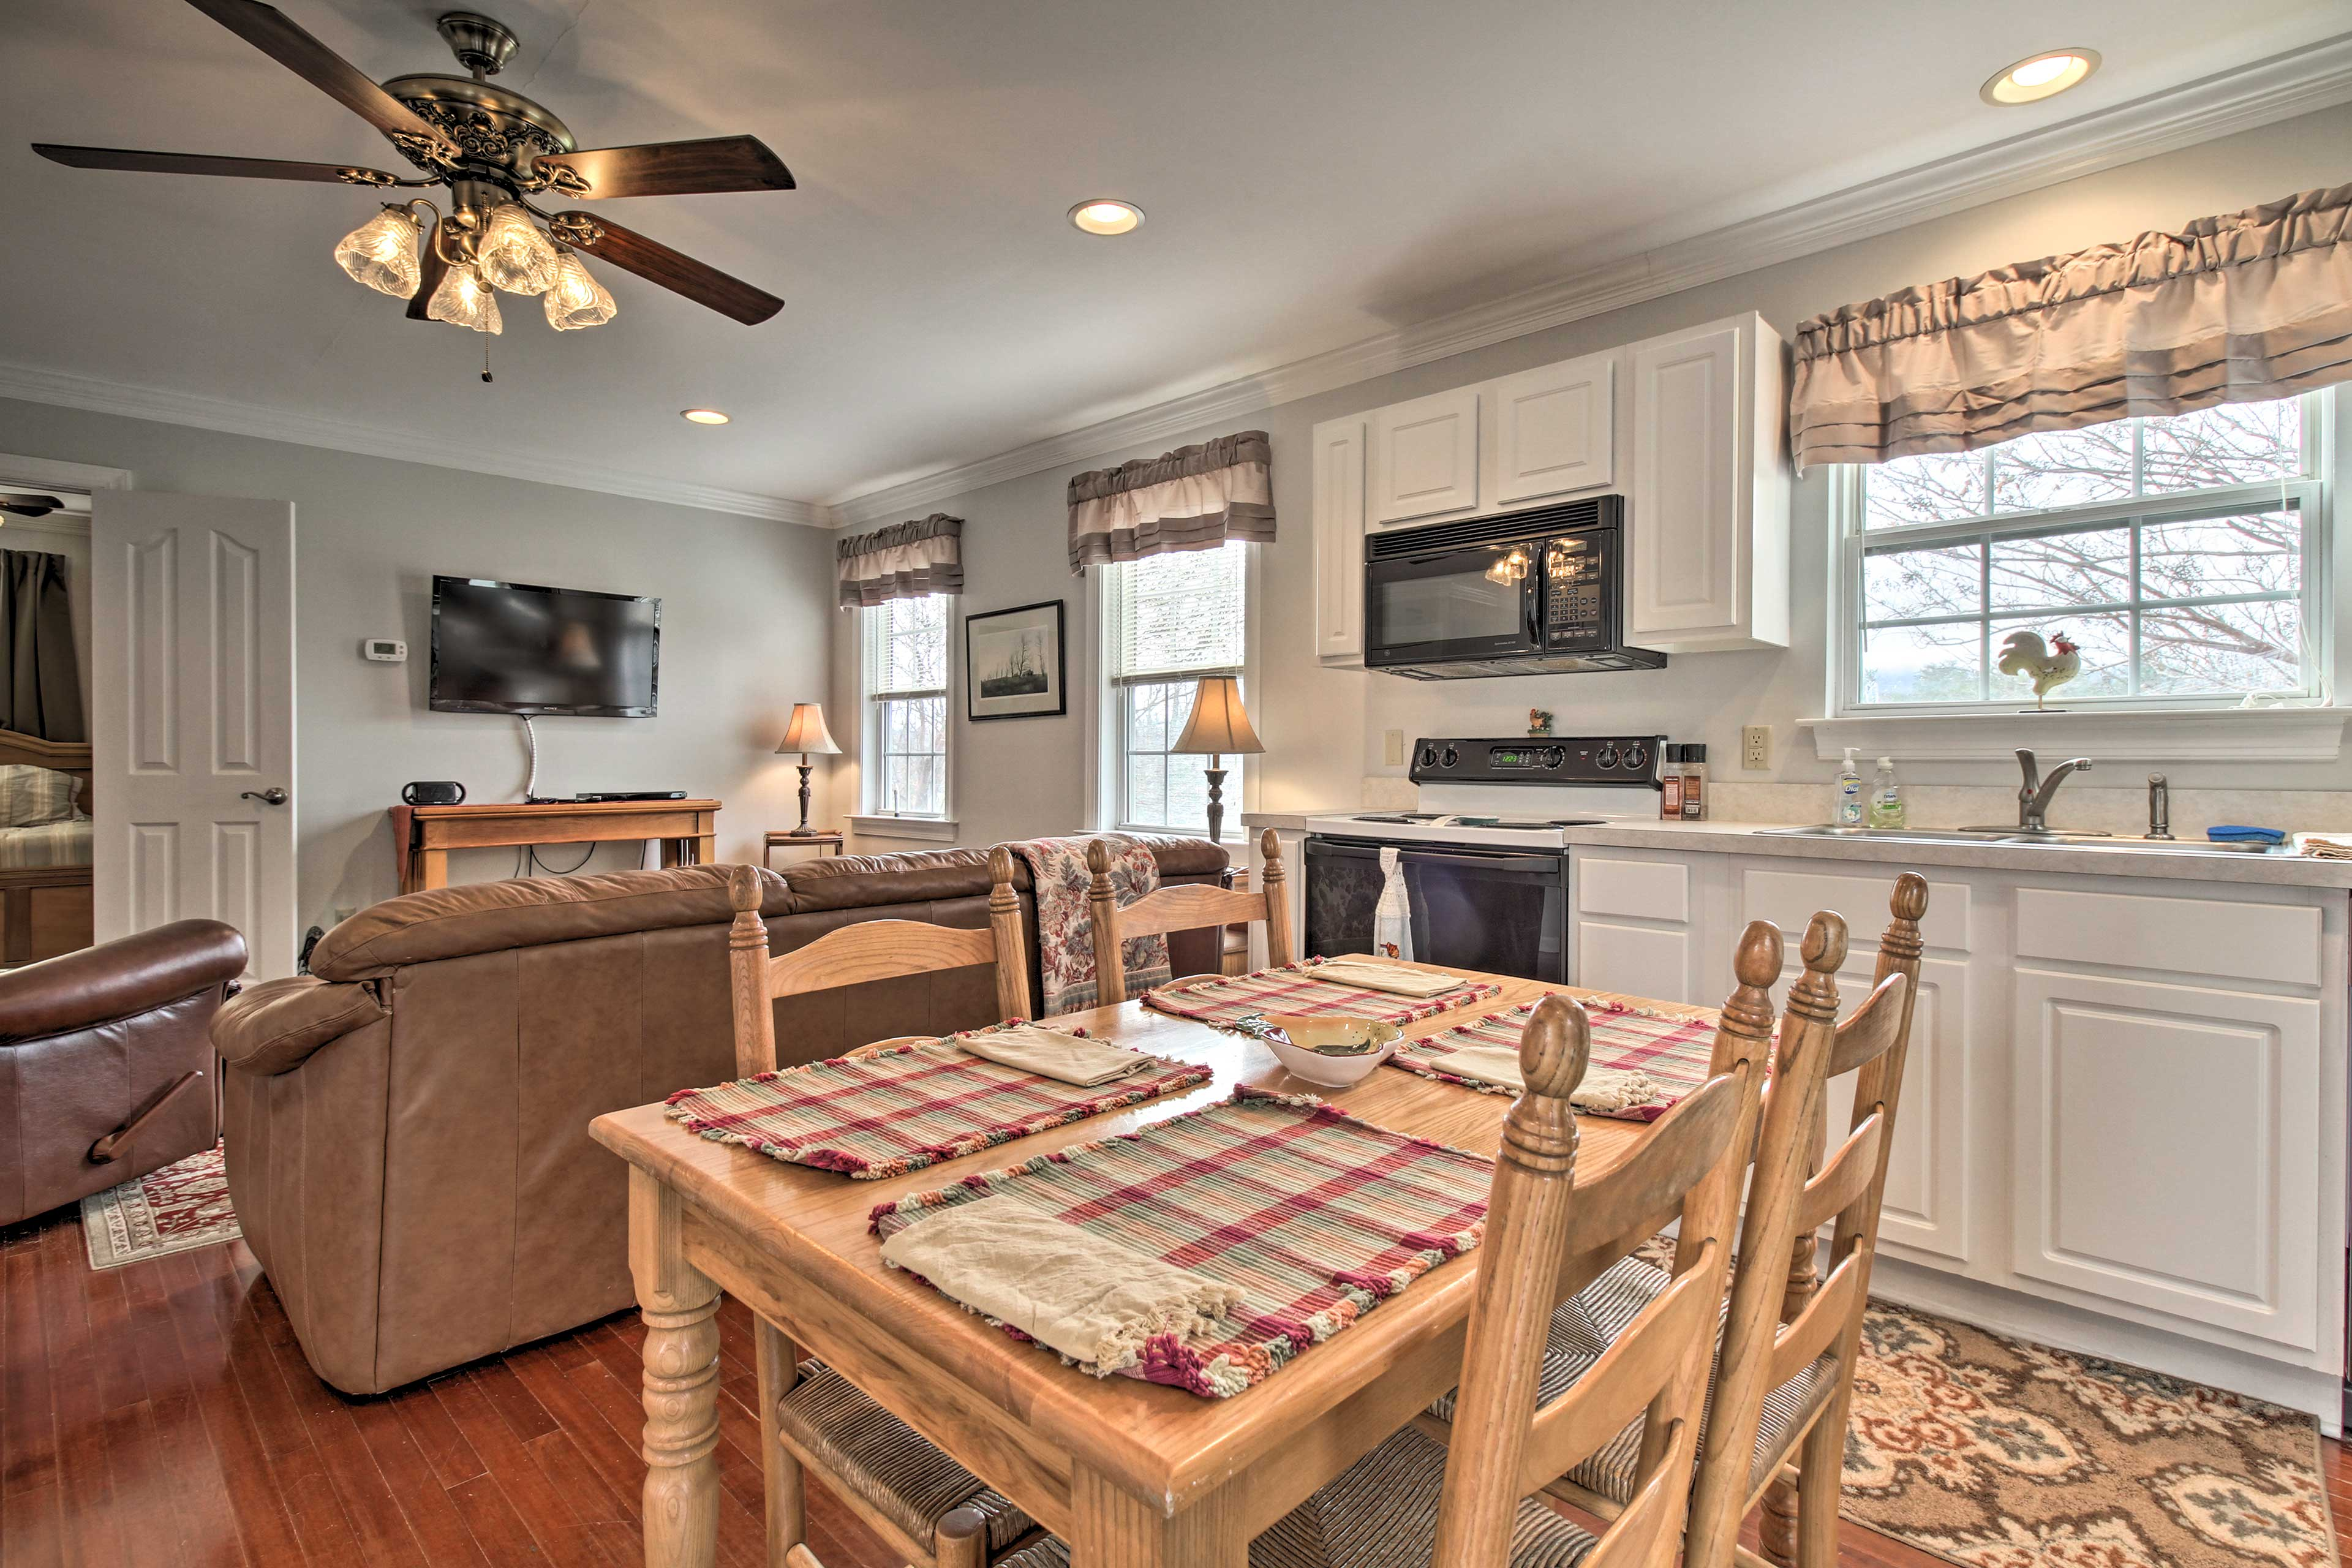 Gleaming hardwood floors and all of the comforts of home furnish the apartment.